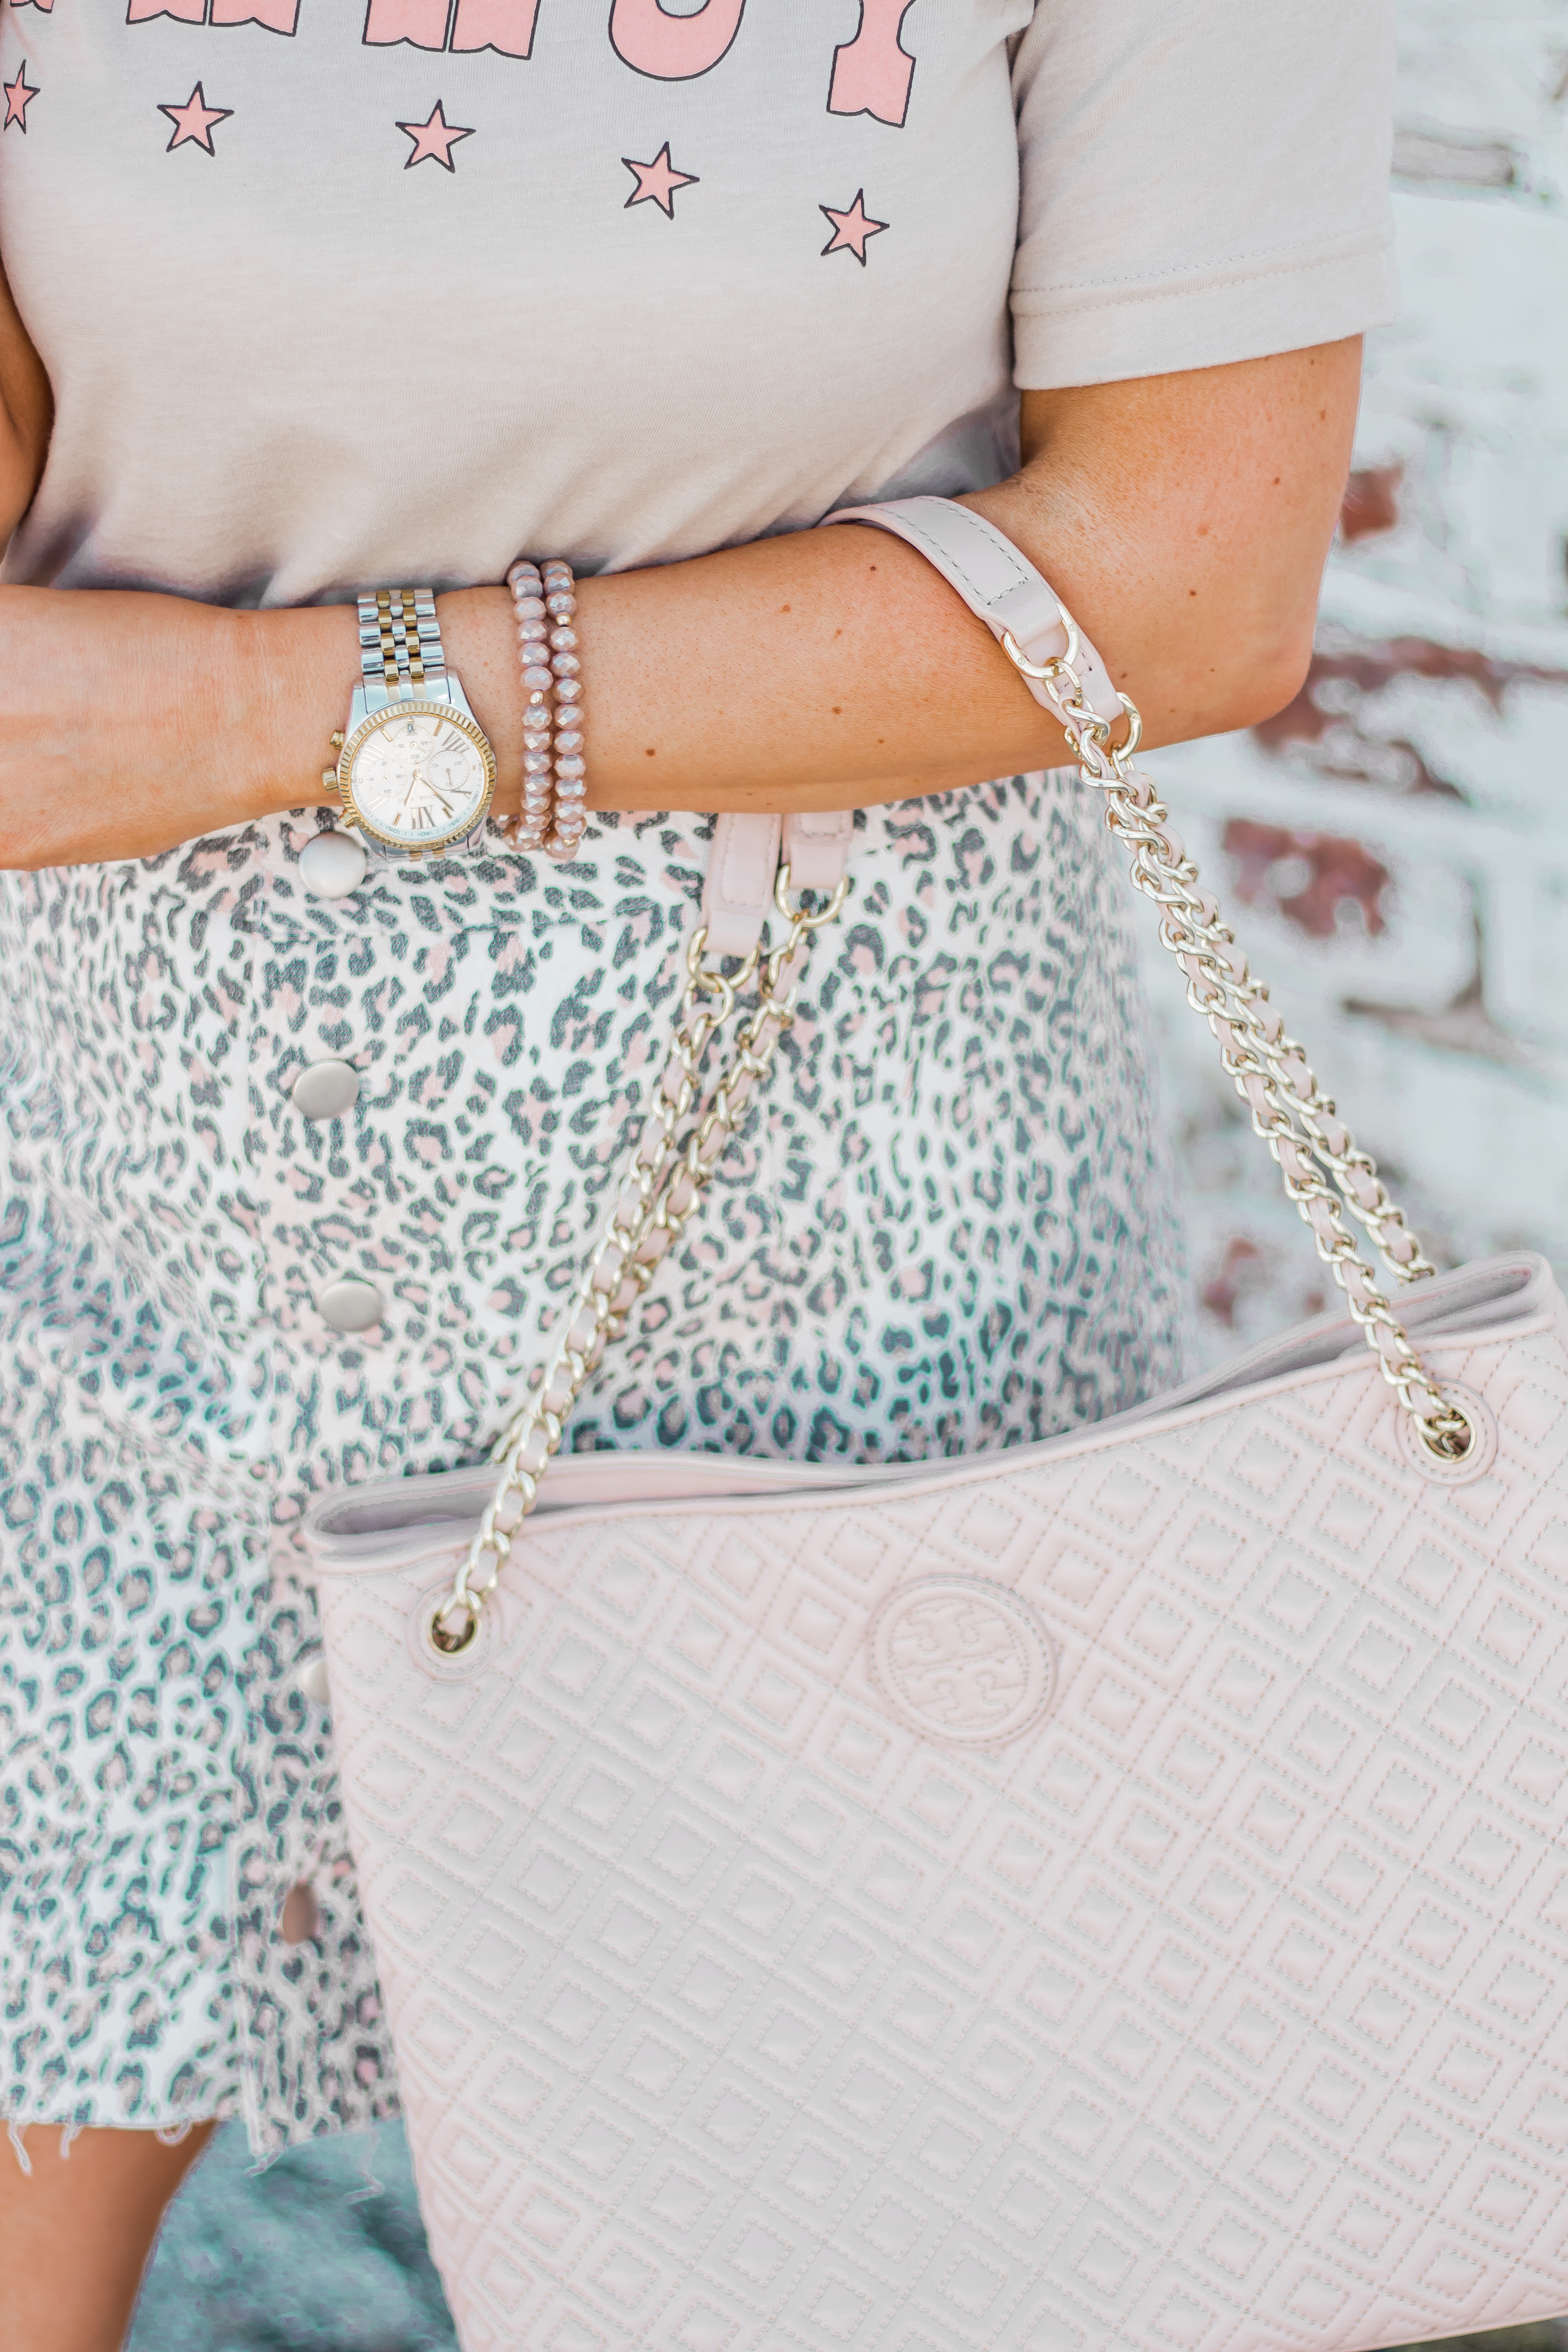 Fancy Graphic Tee-Leopard Skirt-Sugar Boutique-$250 Gift Card Giveaway-Tory Burch Fleming Bag-Quay Sunglasses-Sabby Style-Omaha Blogger-Women's Fashion-Spring Fashion-Summer Outfit-5